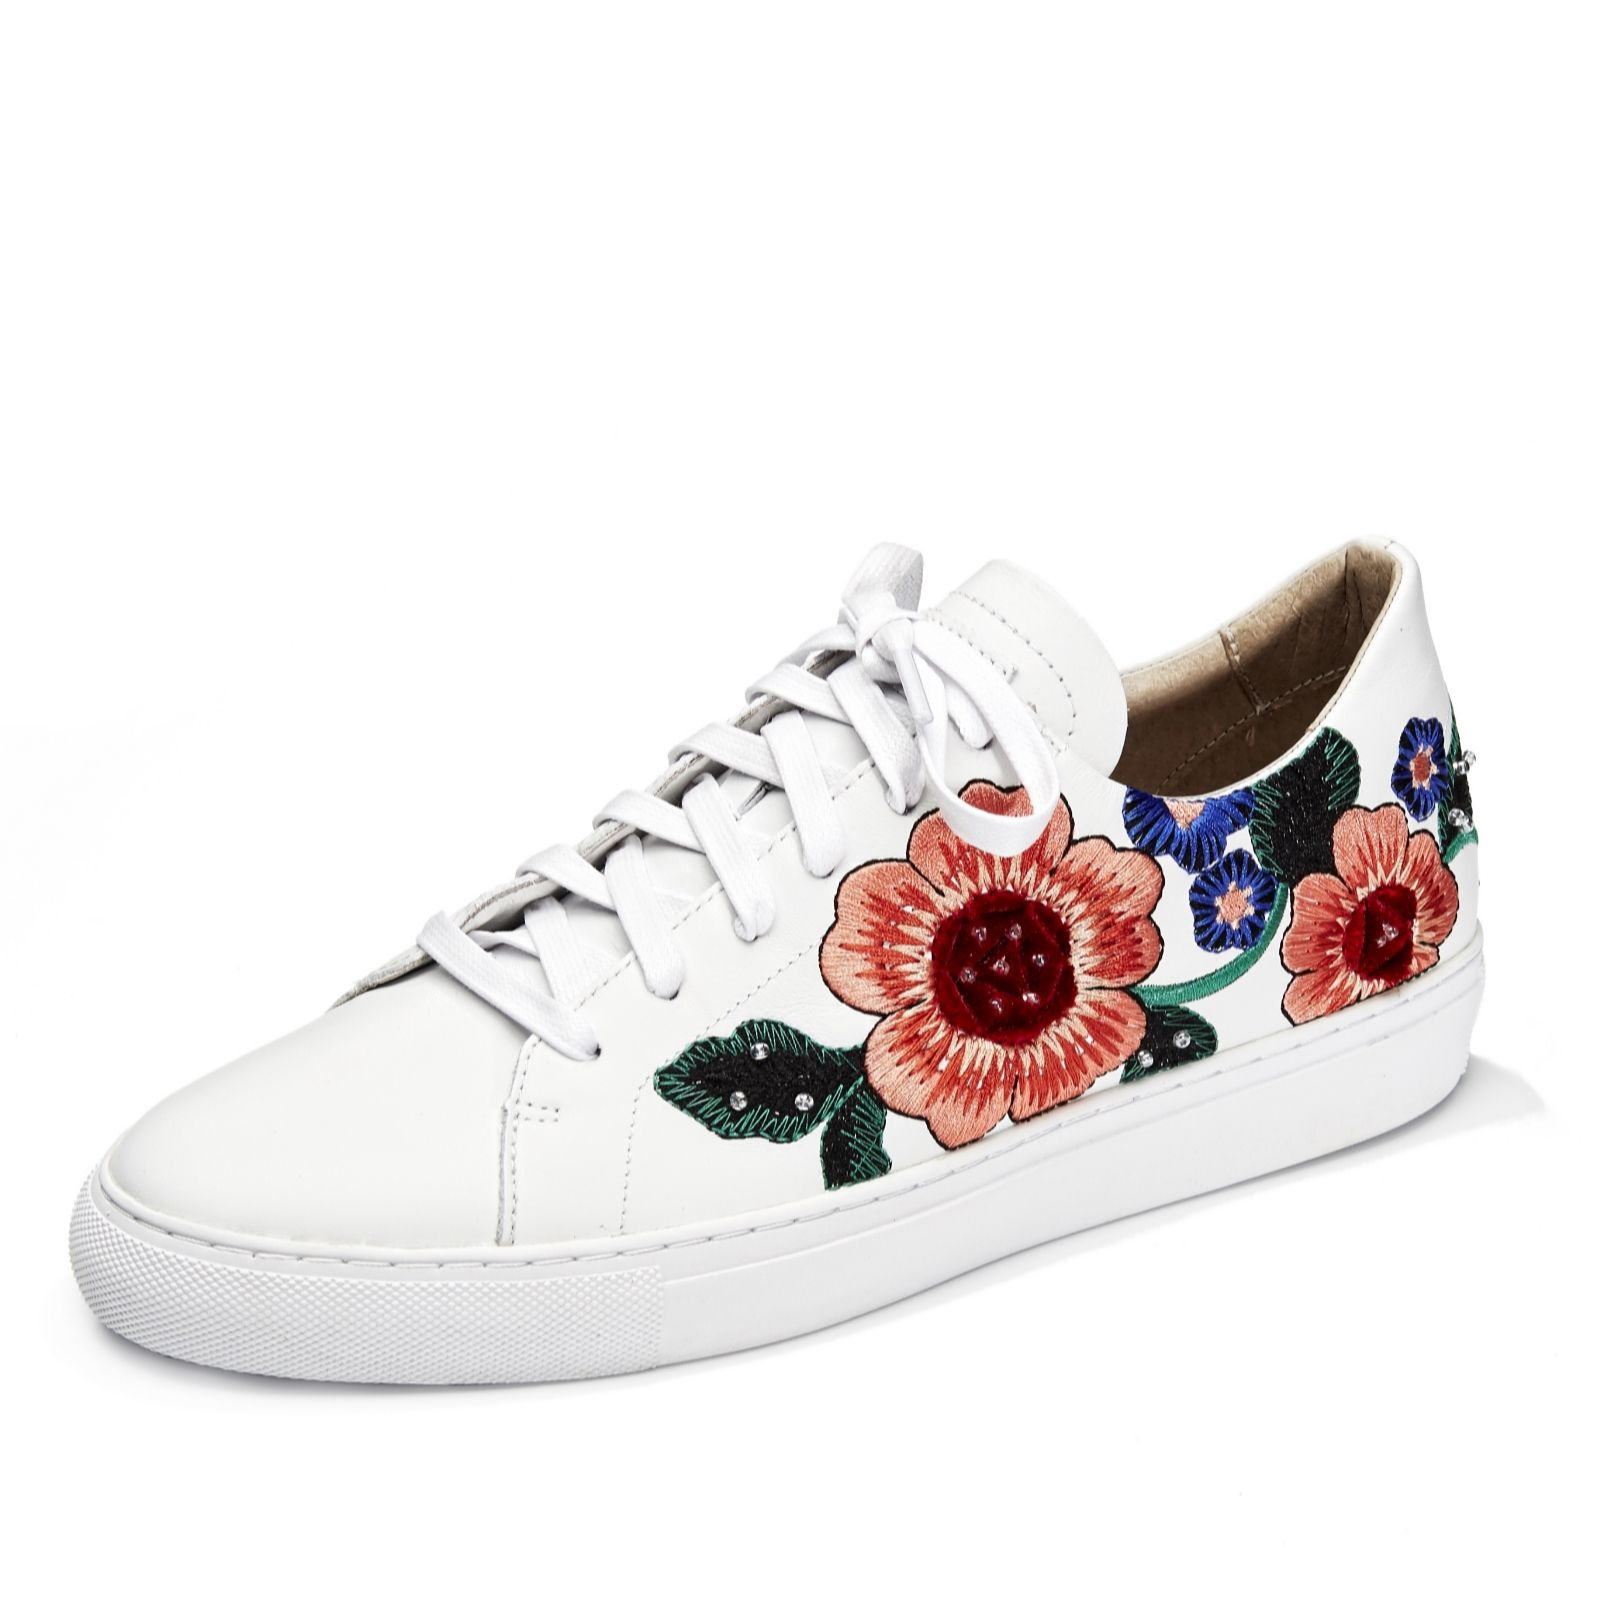 Skechers Vaso Embroidered Floral Trainers QVC UK